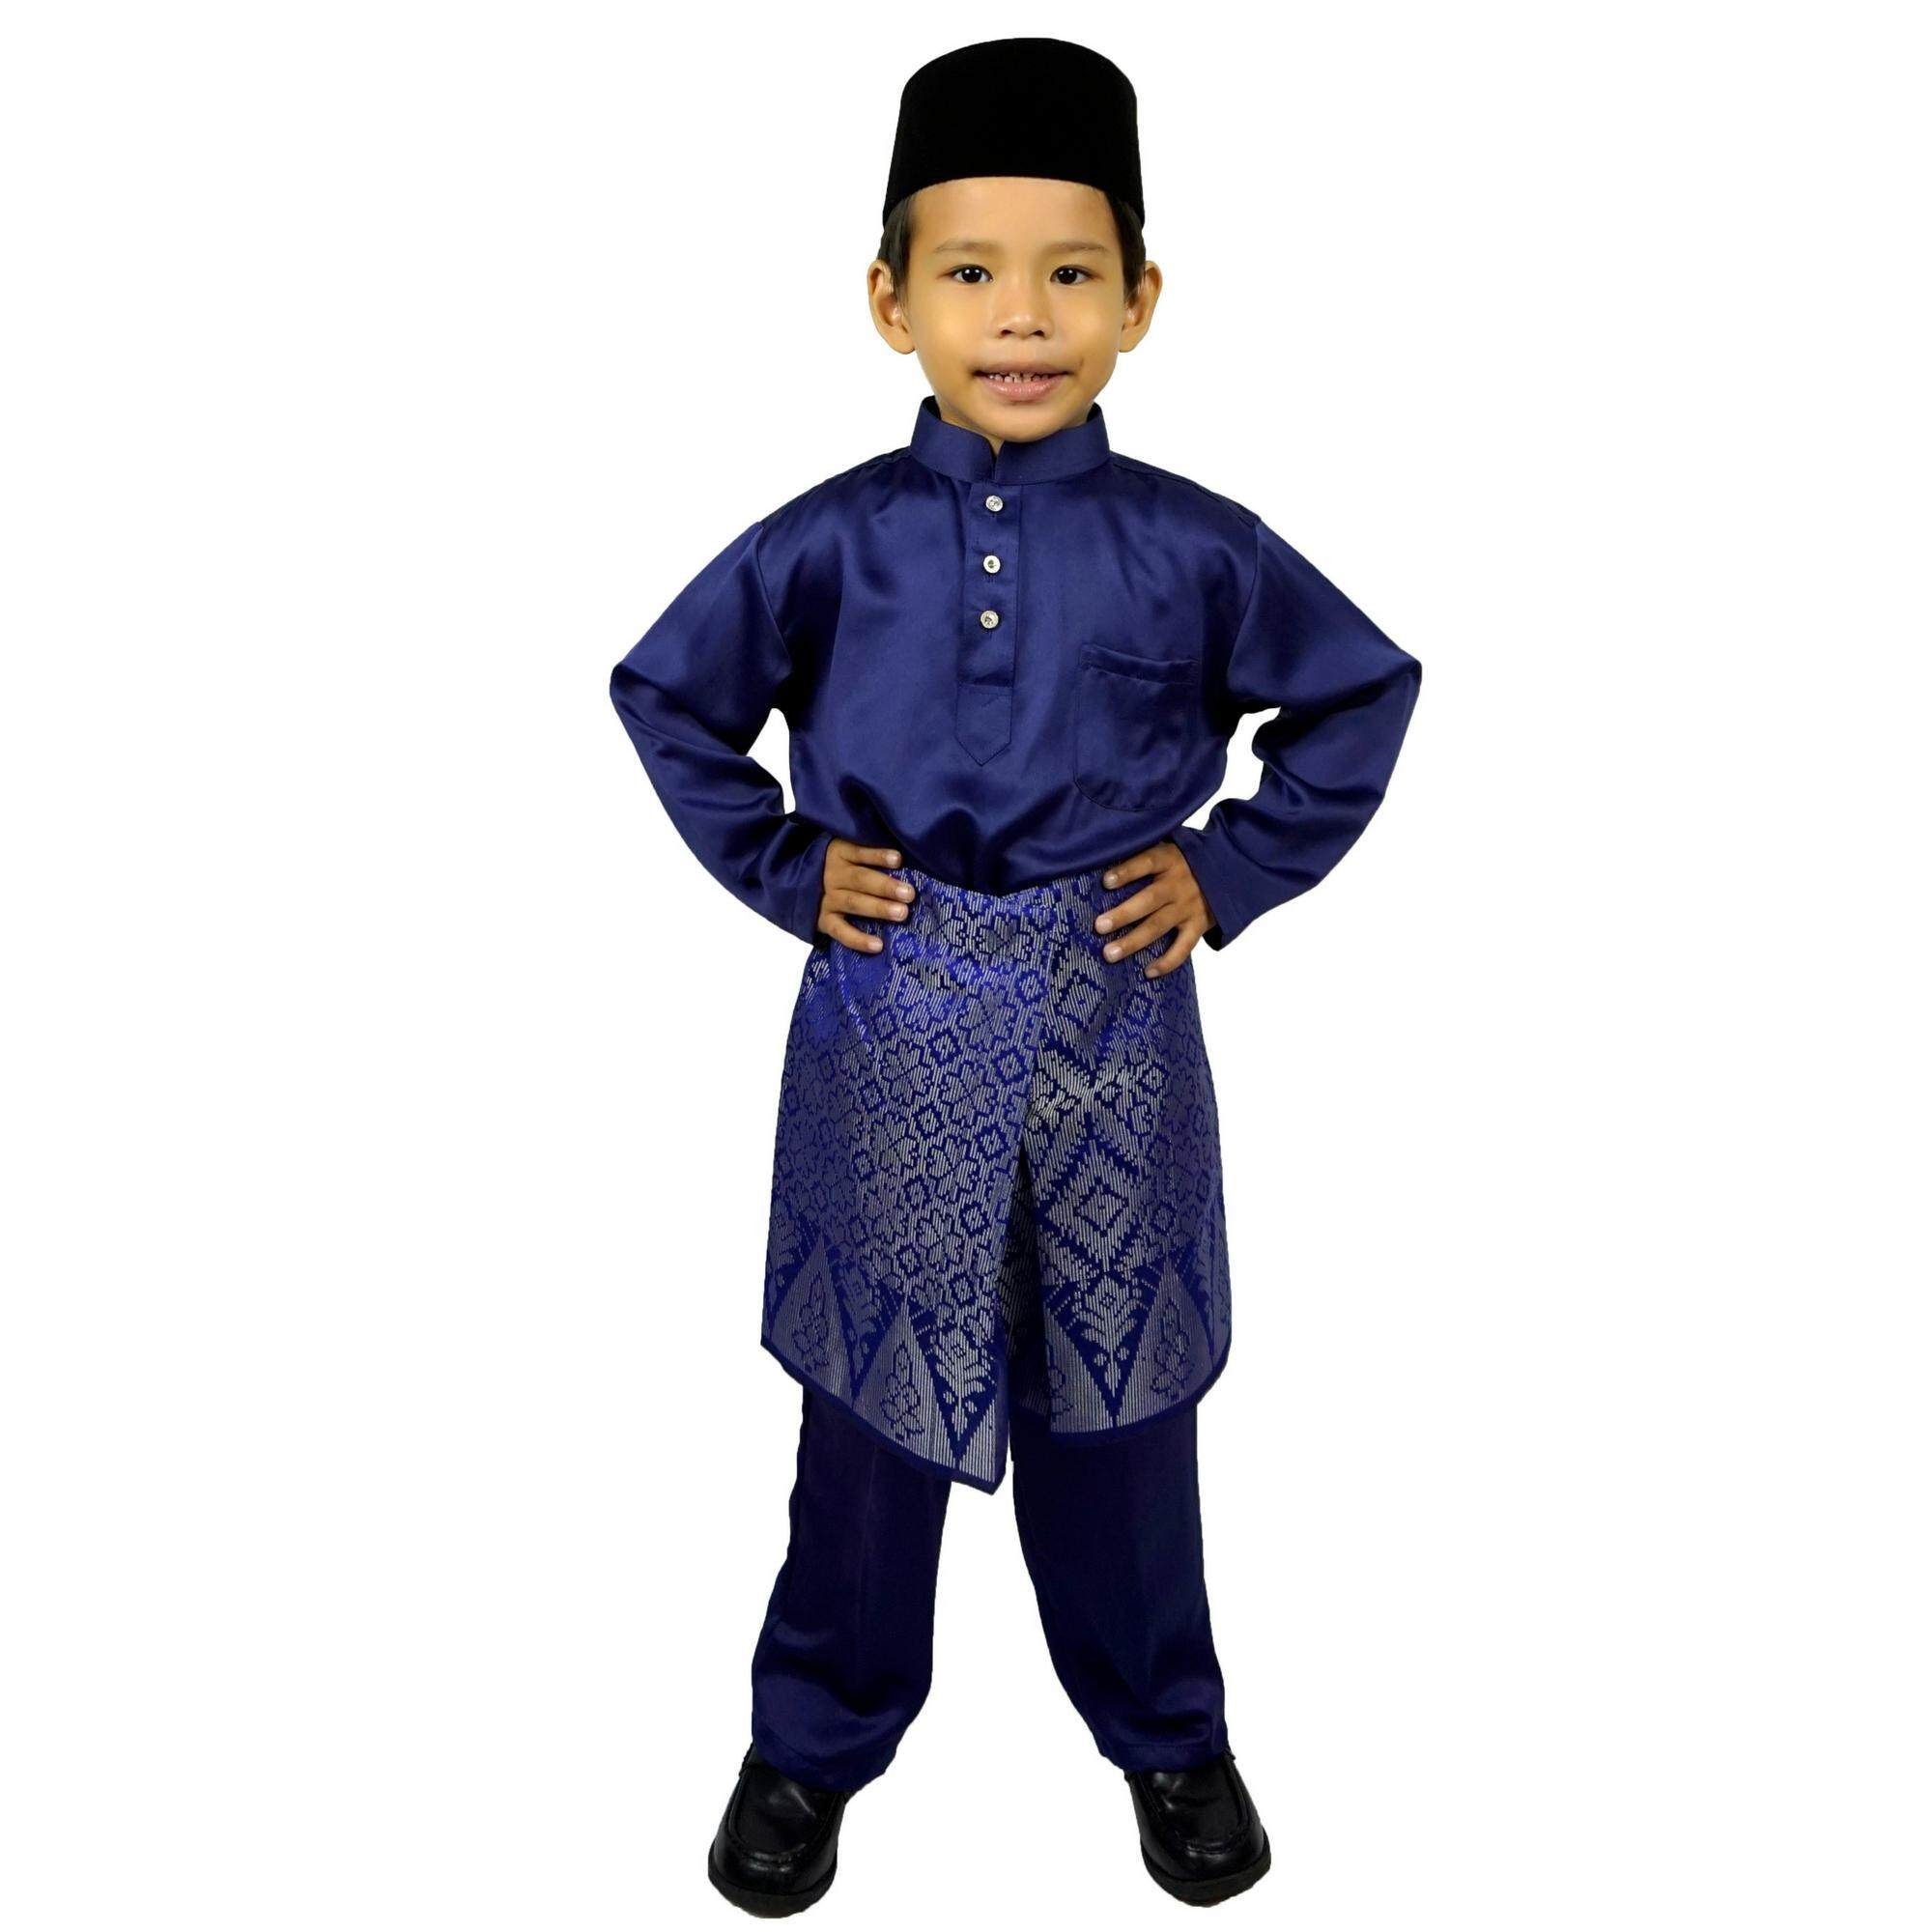 003bm - Baju Melayu Soft Cotton Budak - Navy Blue Colour By Pycollection.